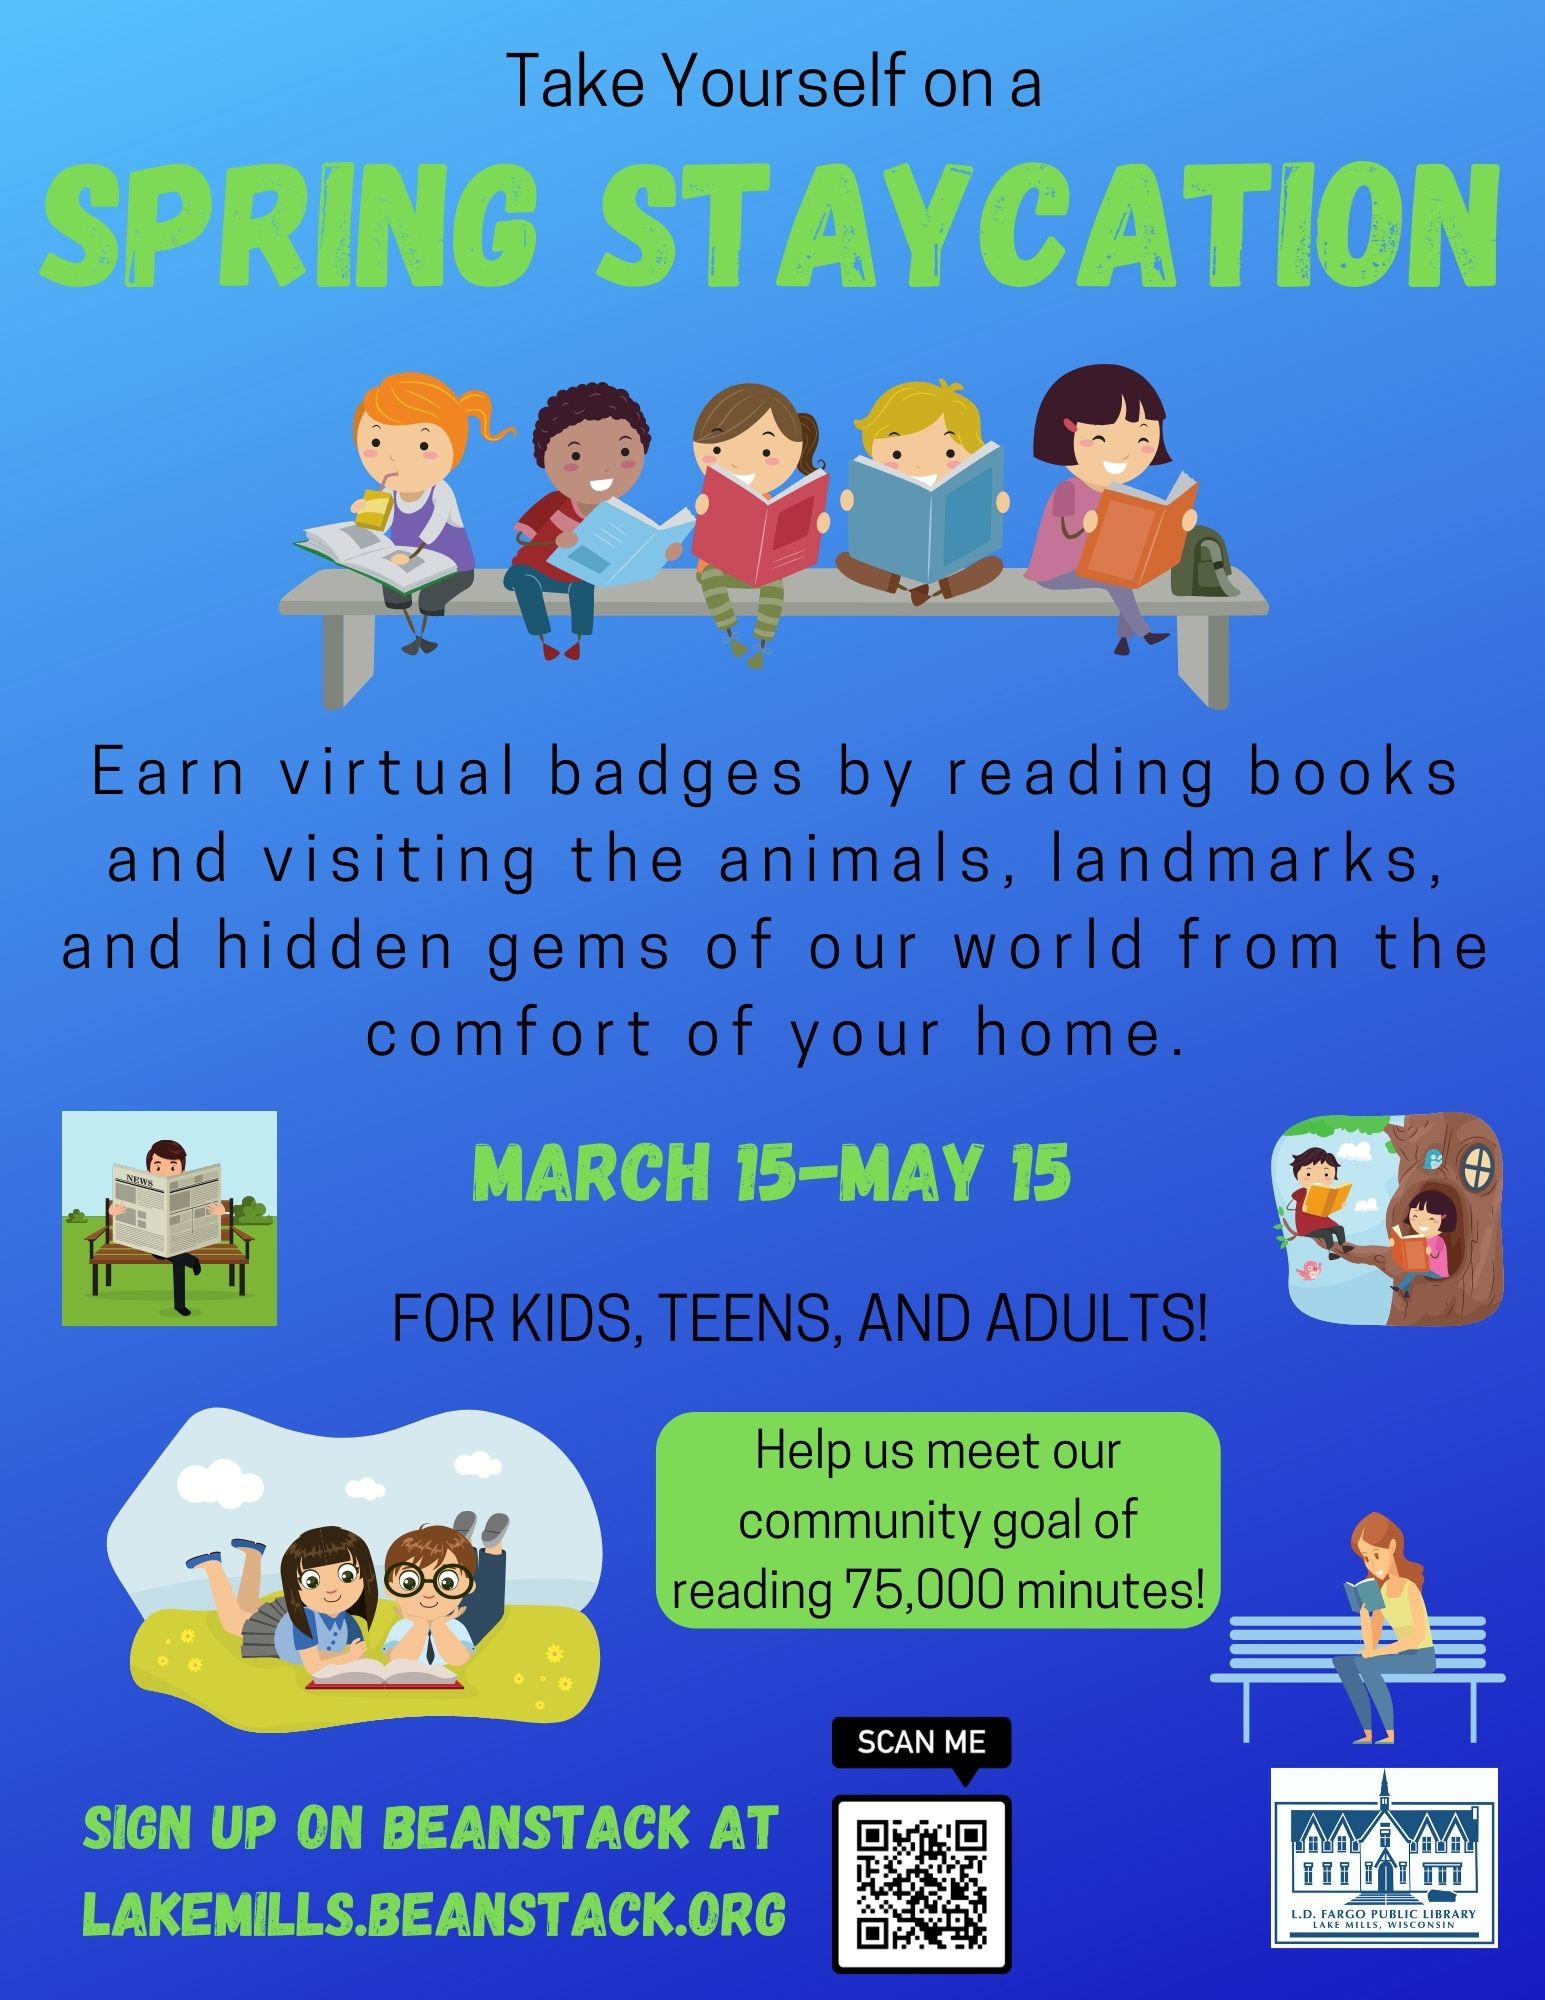 Earn virtual badges by reading books and visiting the animals, landmarks, and hidden gems of our world from the comfort of your home.  March 15-May 15.  For Kids, Teens, and Adults!  Help us meet our community goal of reading 75,000 minutes!  Simply sign up on Beanstack or use the app available through iOS and Android.